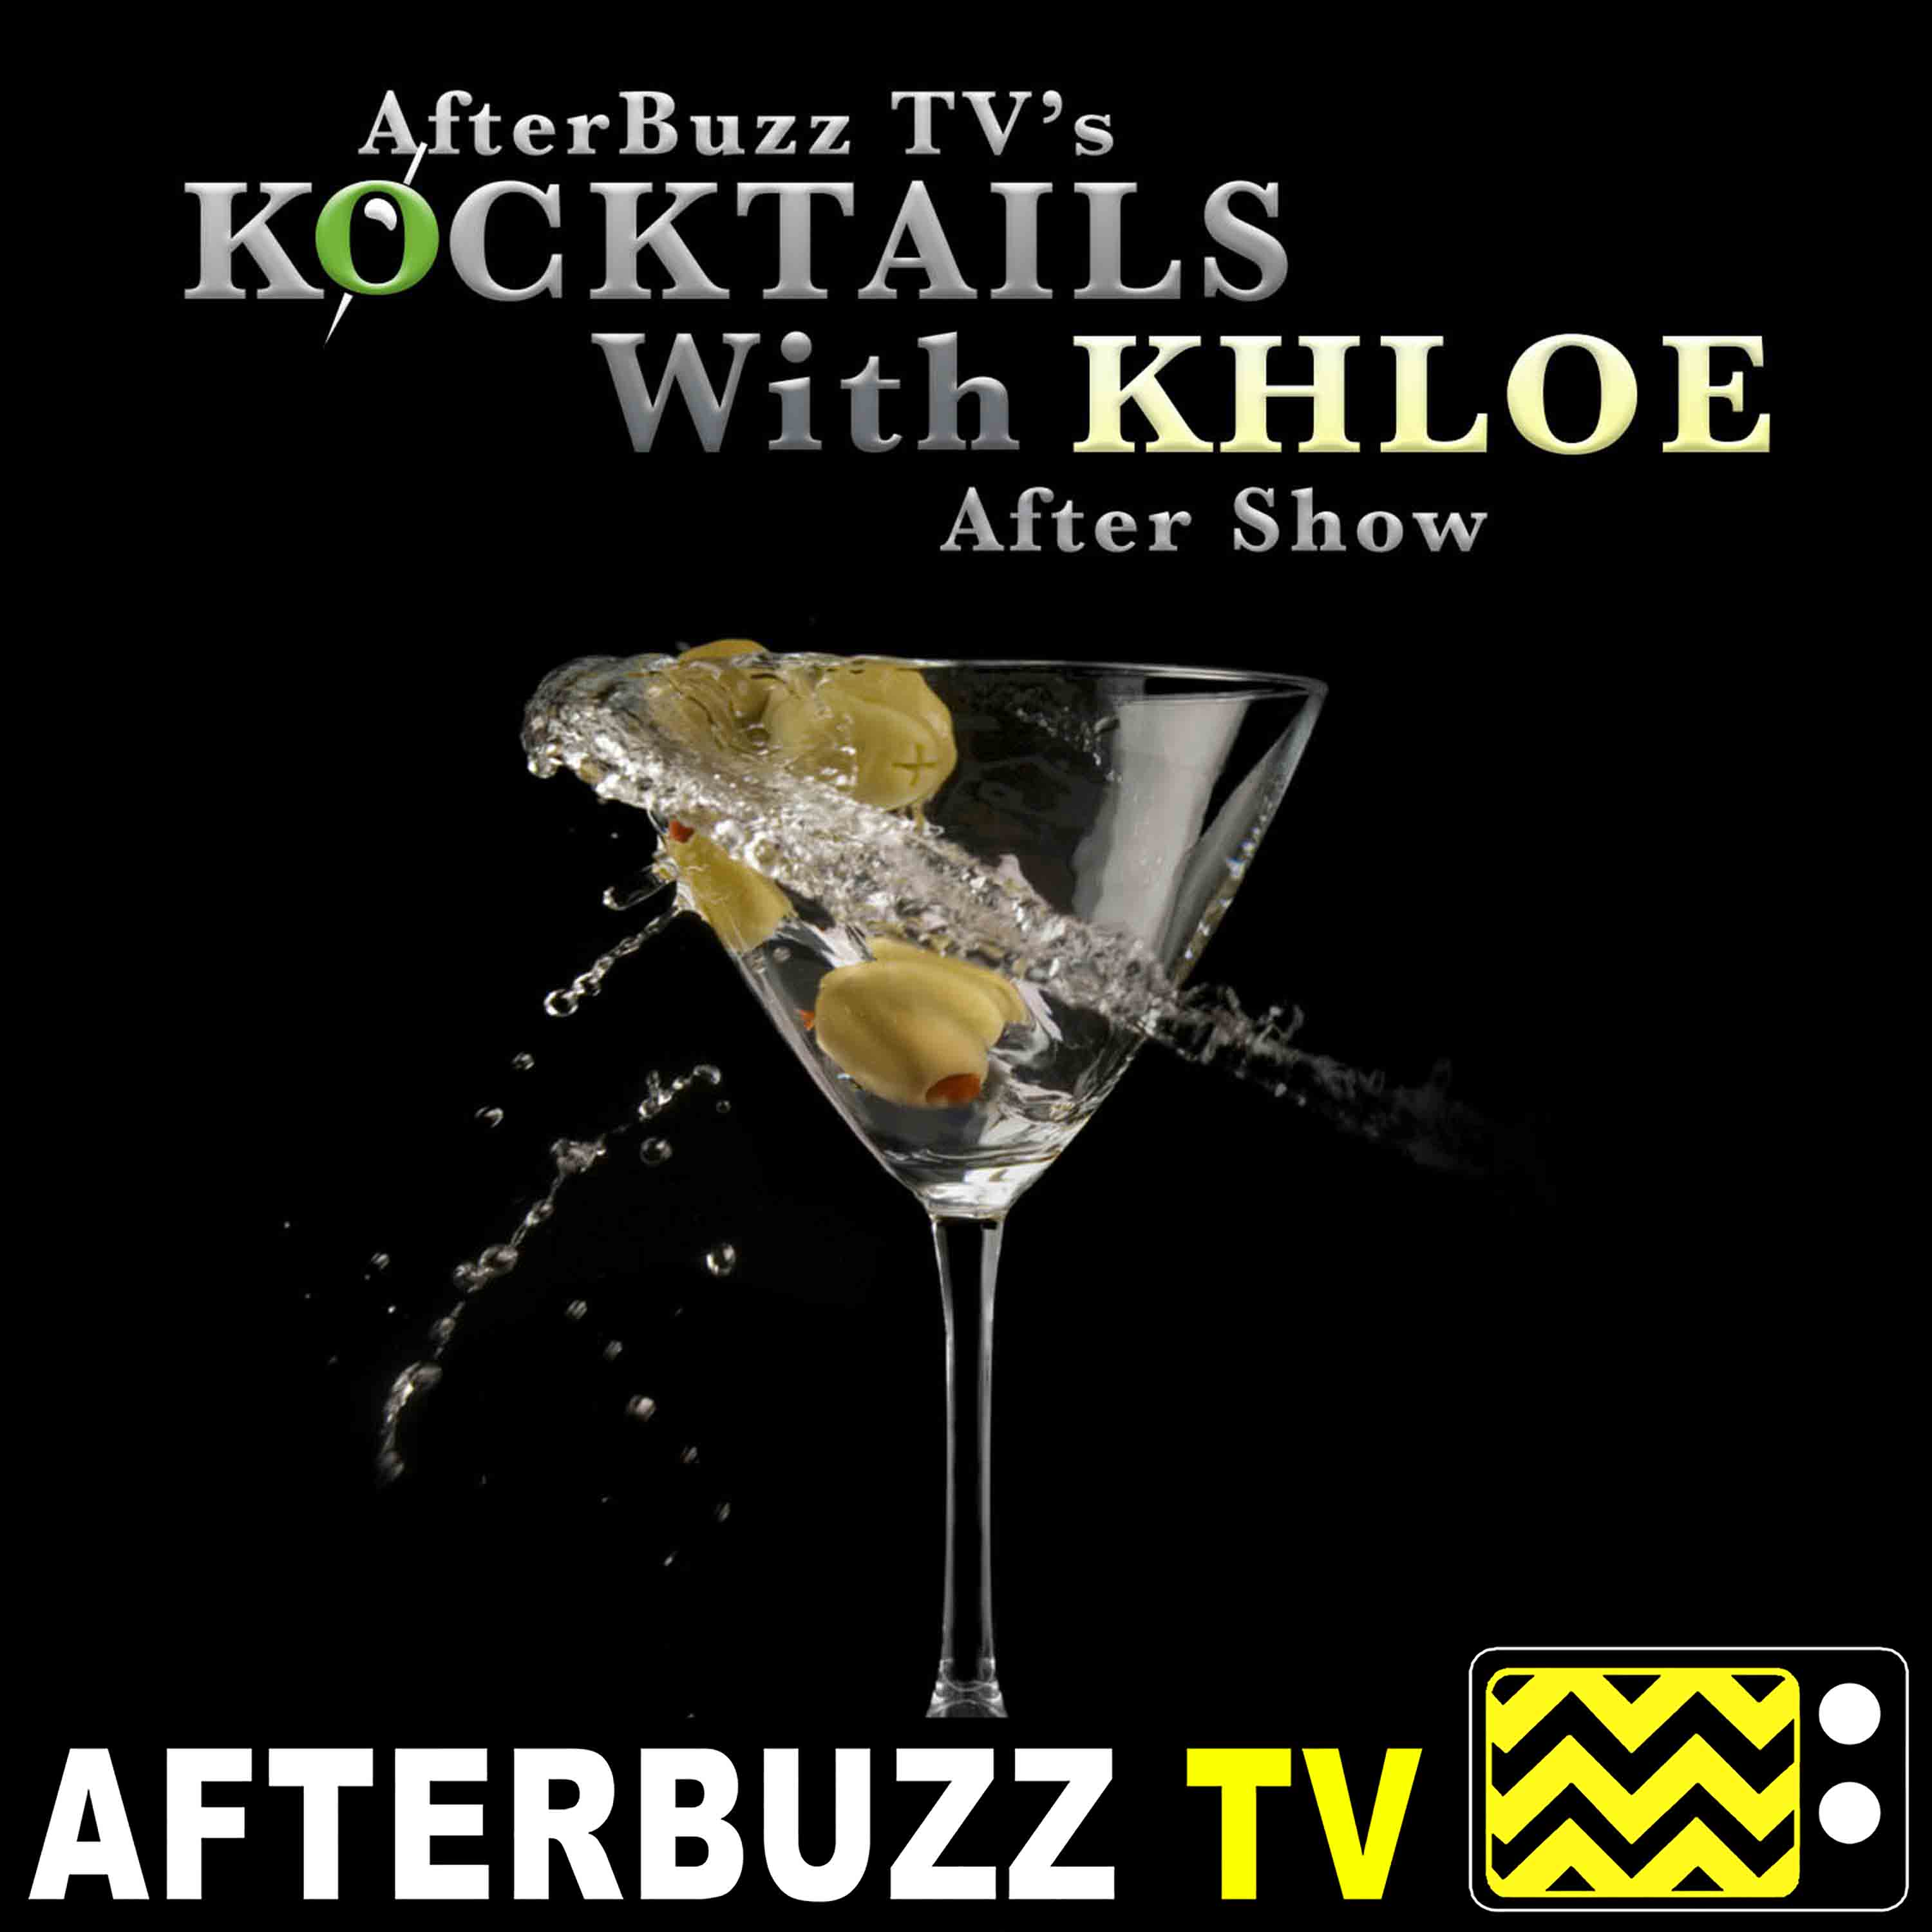 Kocktails With Khloe Reviews and After Show